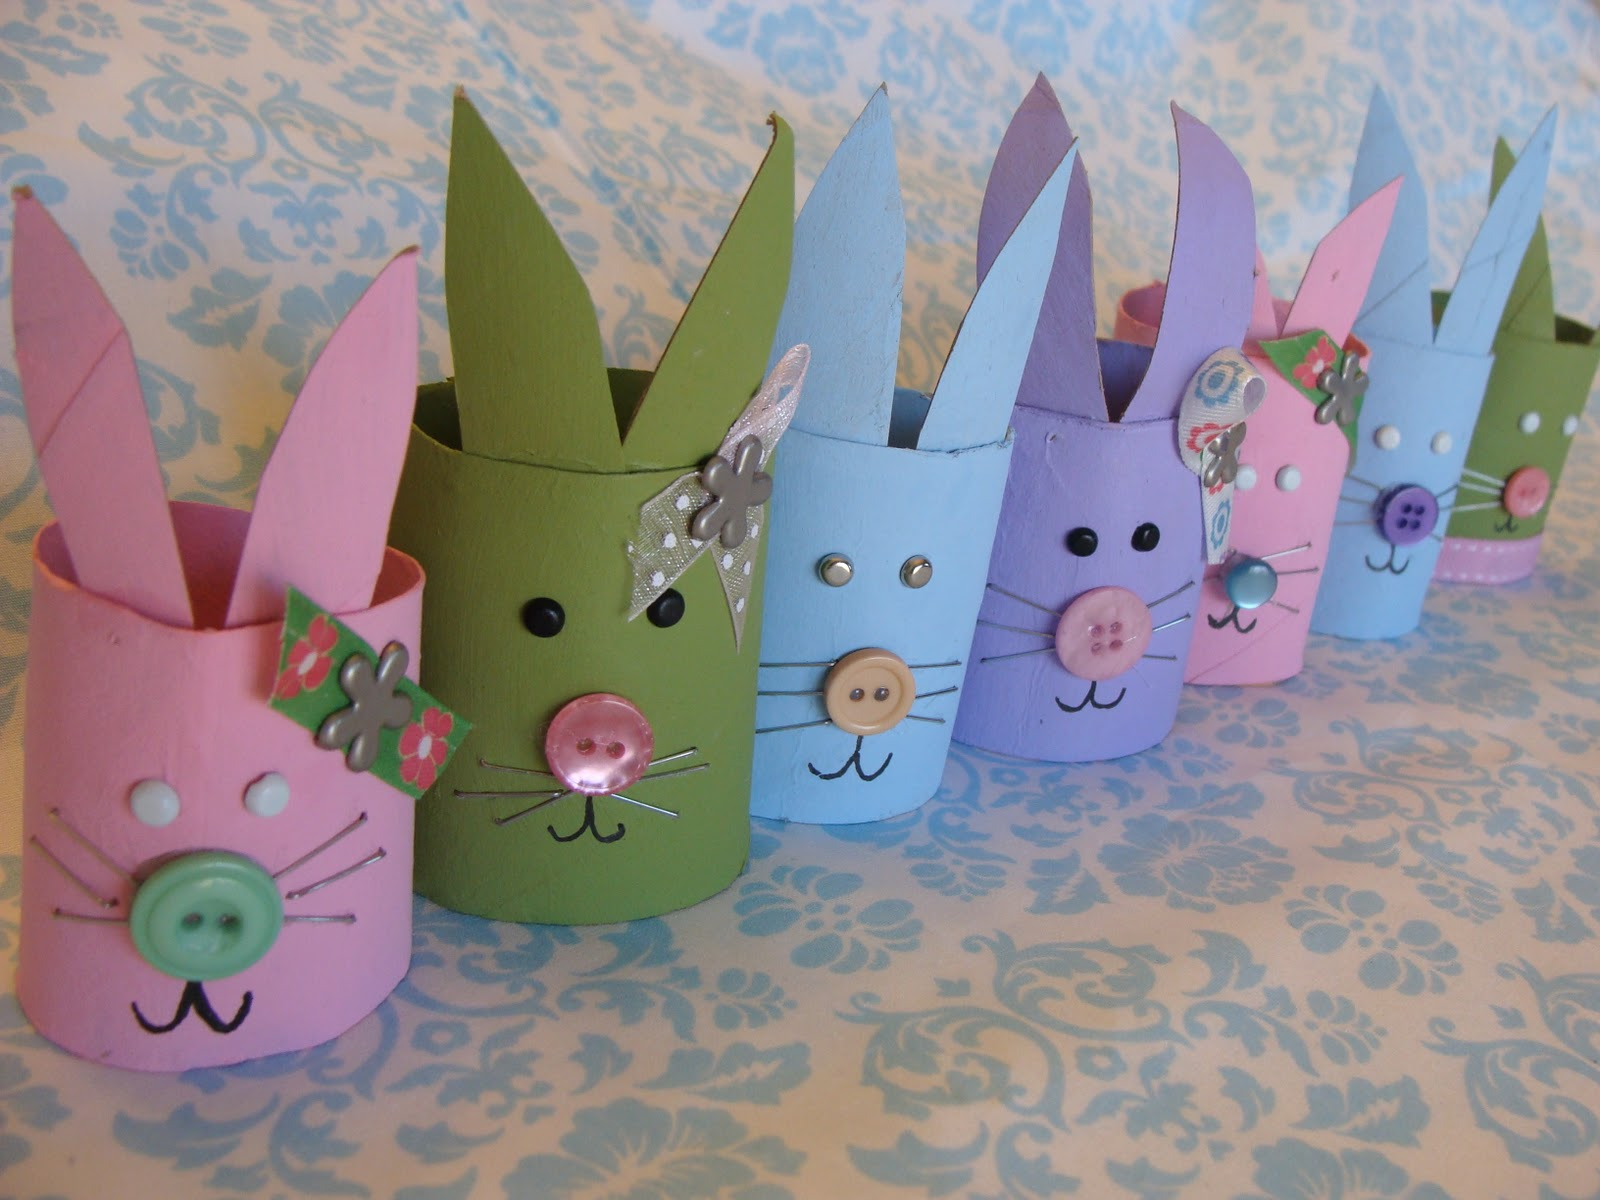 My little gems easter bunny craft from cardboard tubes